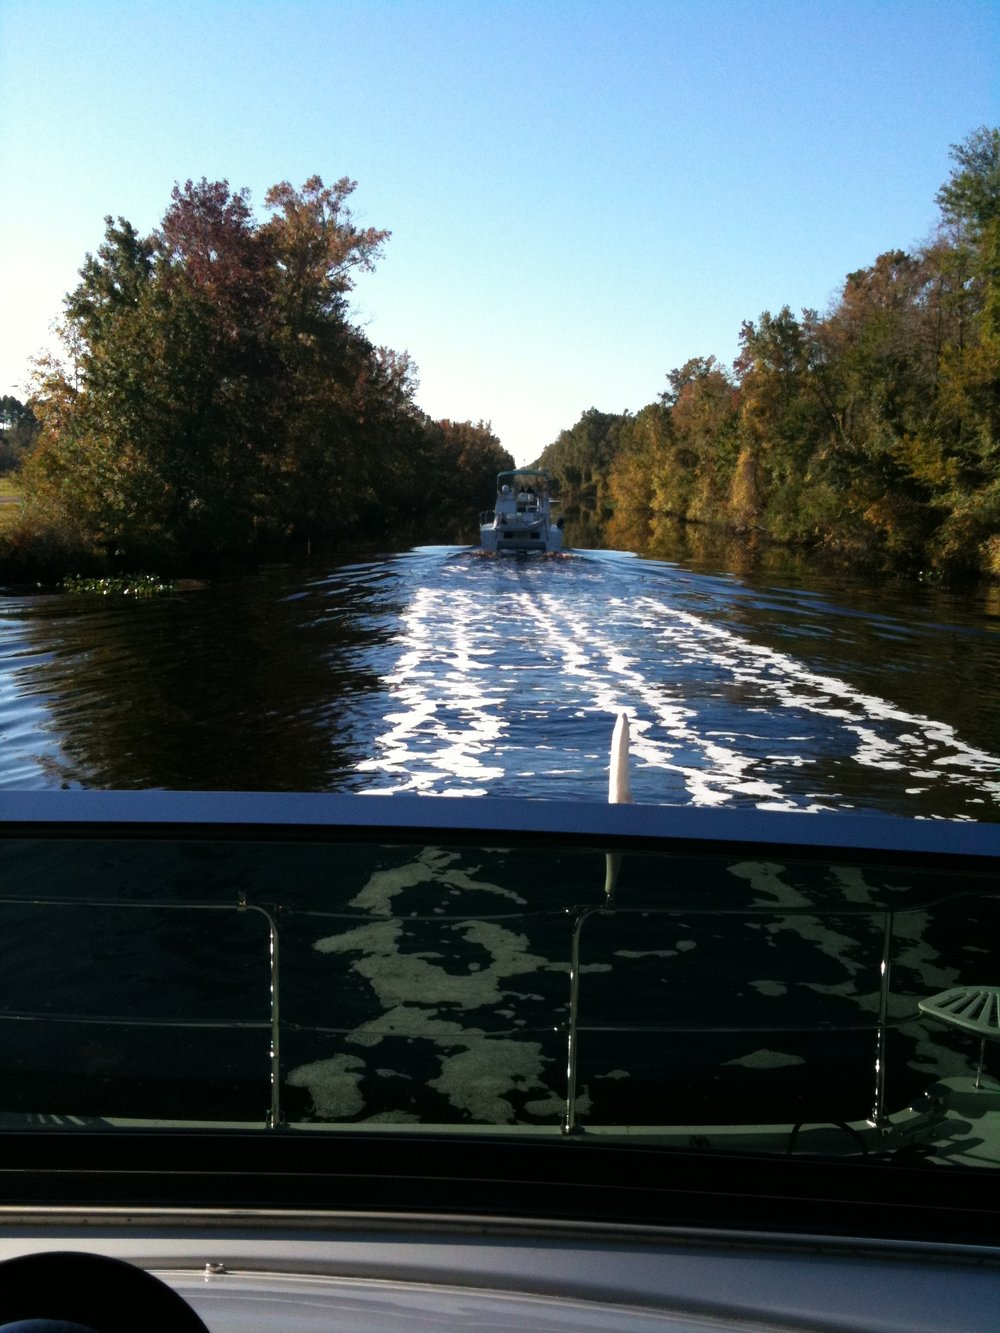 Following a power cat in the Dismal Swamp in North Carolina, as a string of trawlers and sailboats left the locks. Not much room to pass here!